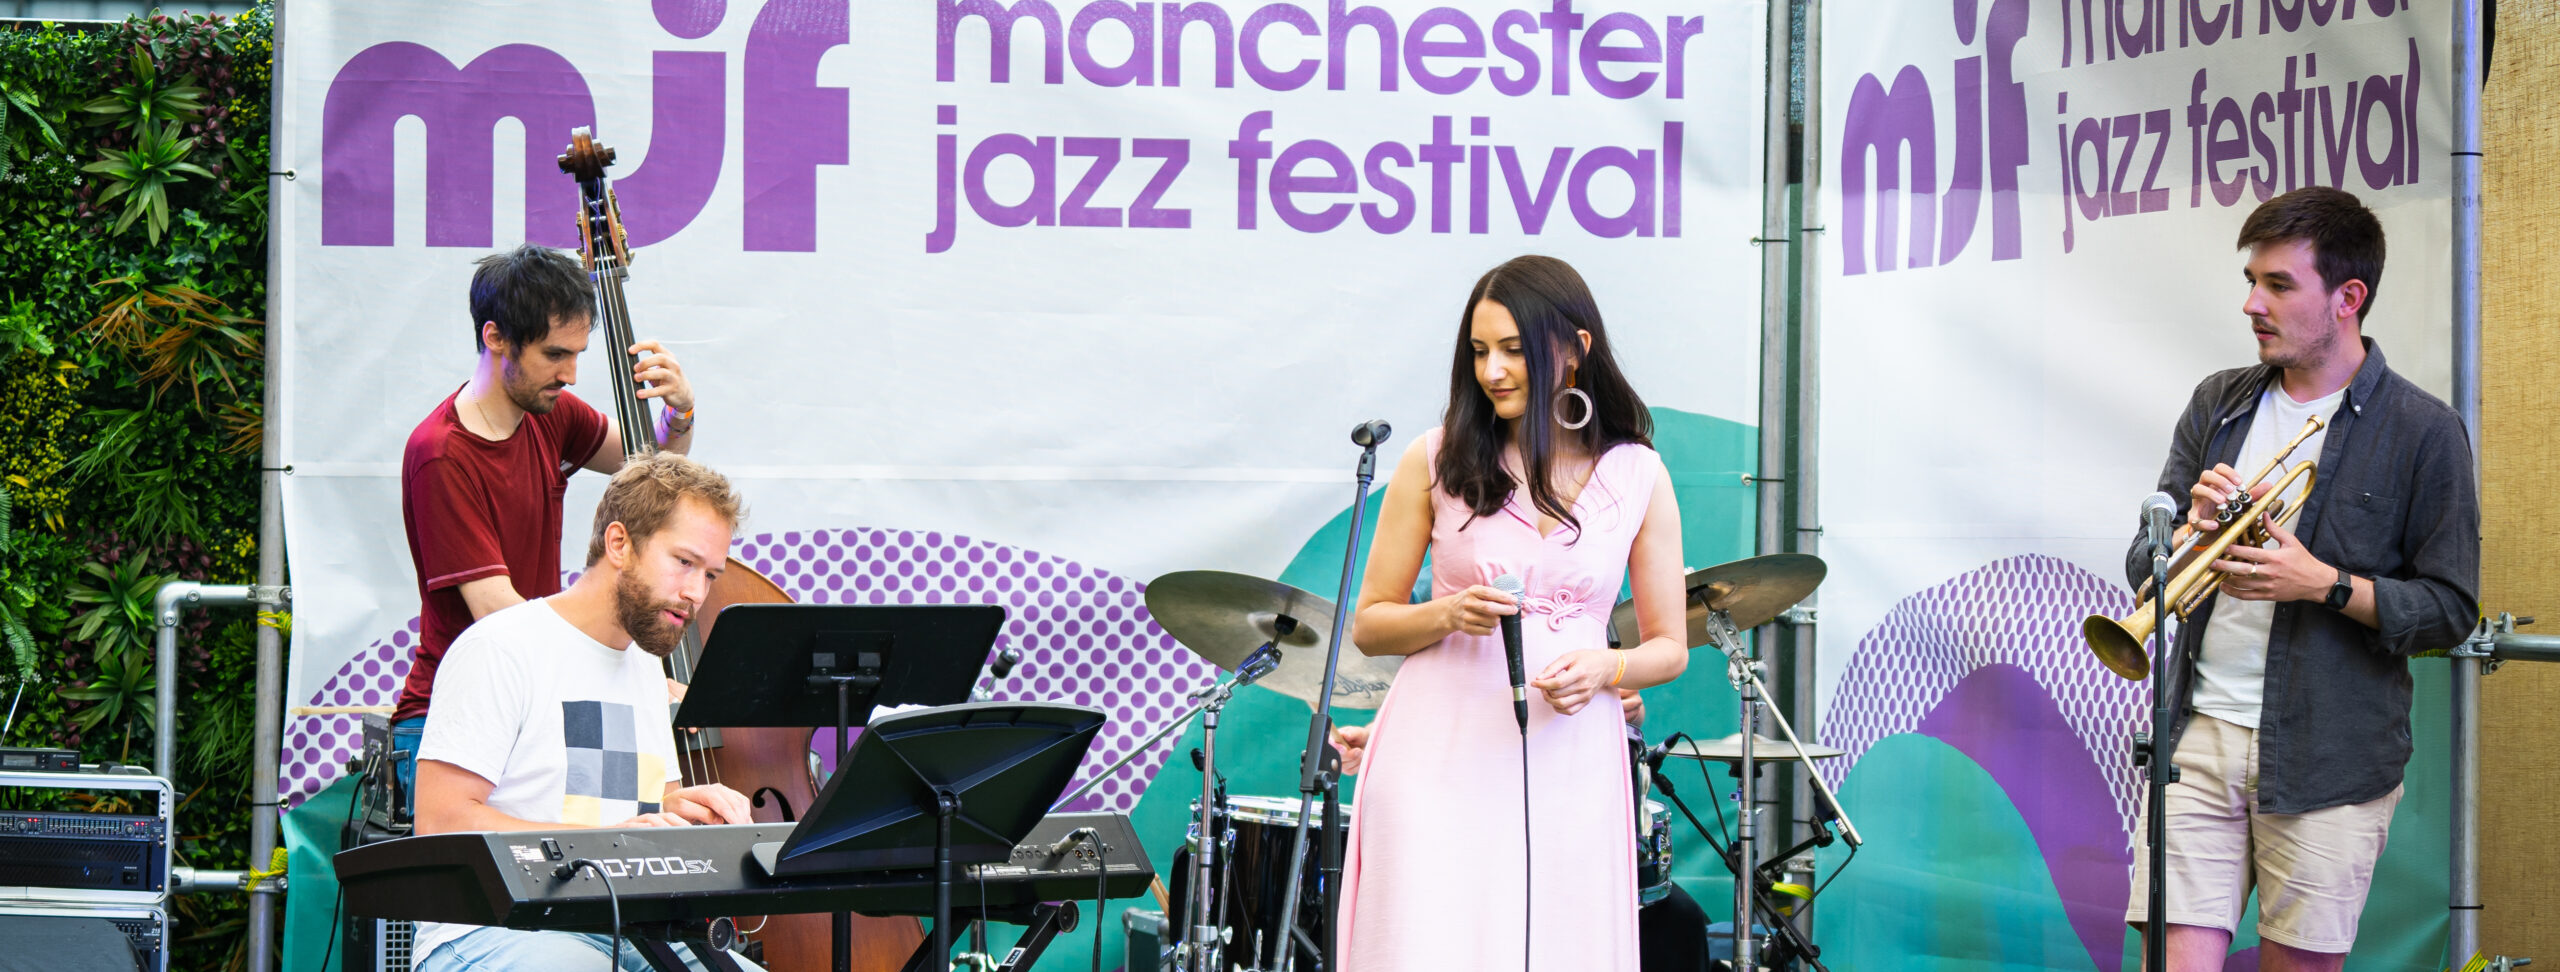 manchester jazz festival heads to Homeground!